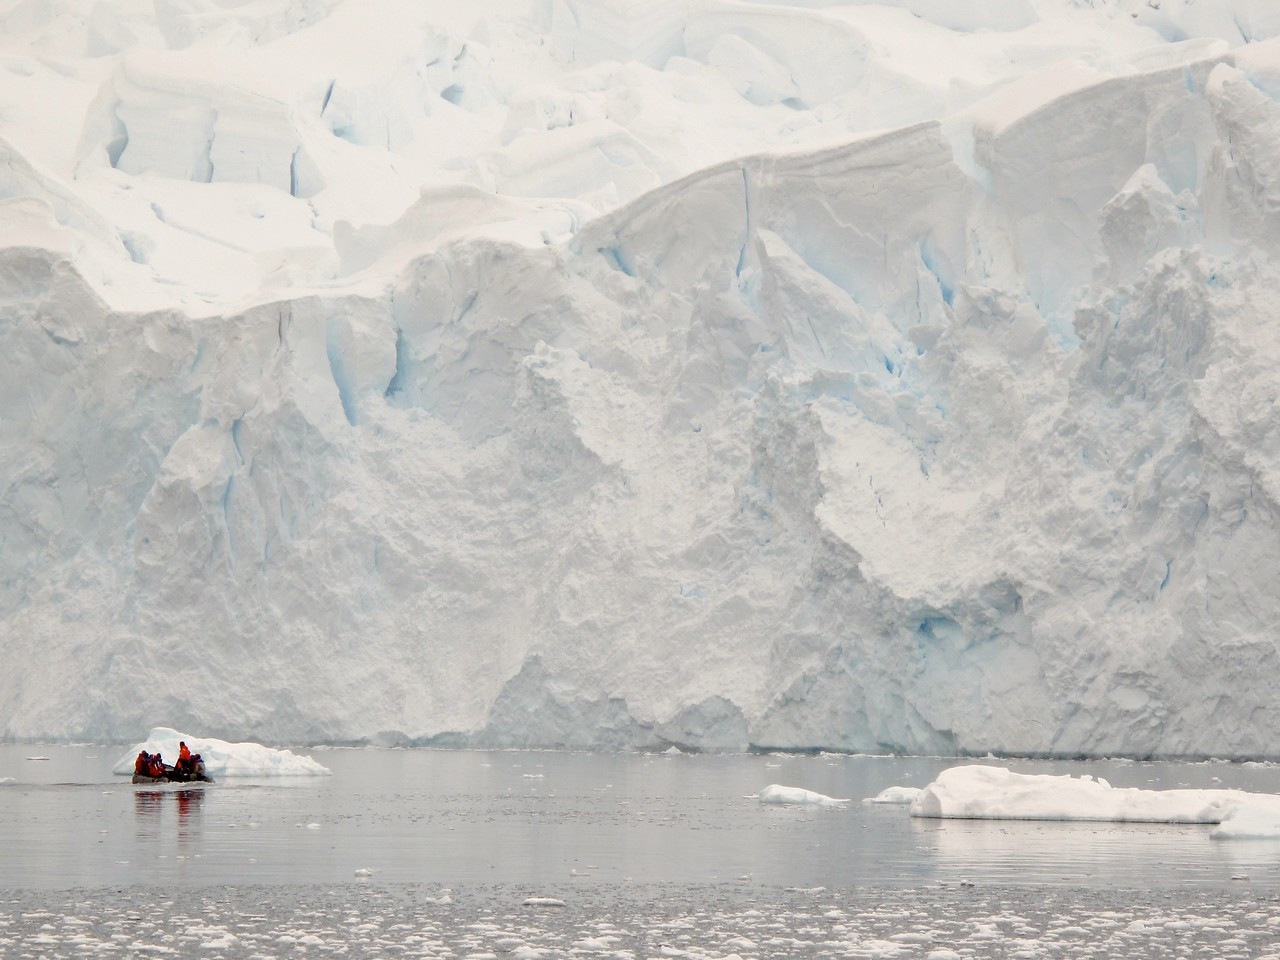 Let's hope this glacier stays in place while the zodiac sails by.